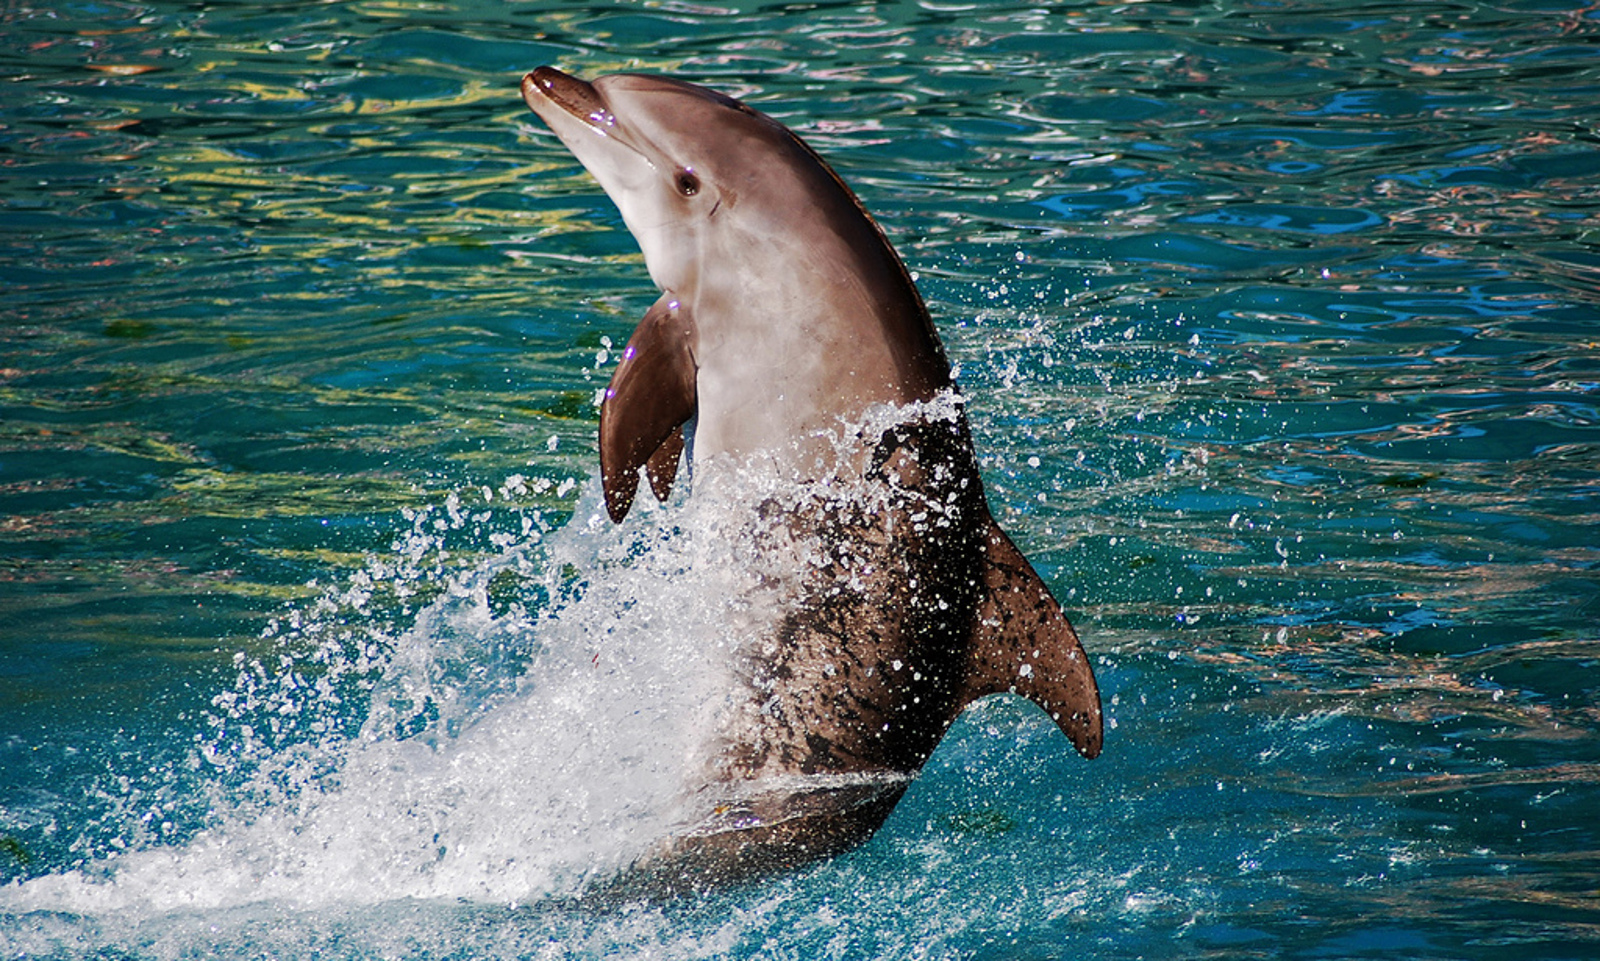 Clashing Opinions on the End of the Cruel Taiji Dolphin Hunts: Why We Can't Give Up NowClashing Opinions on the End of the Cruel Taiji Dolphin Hunts: Why We Can't Give Up Now